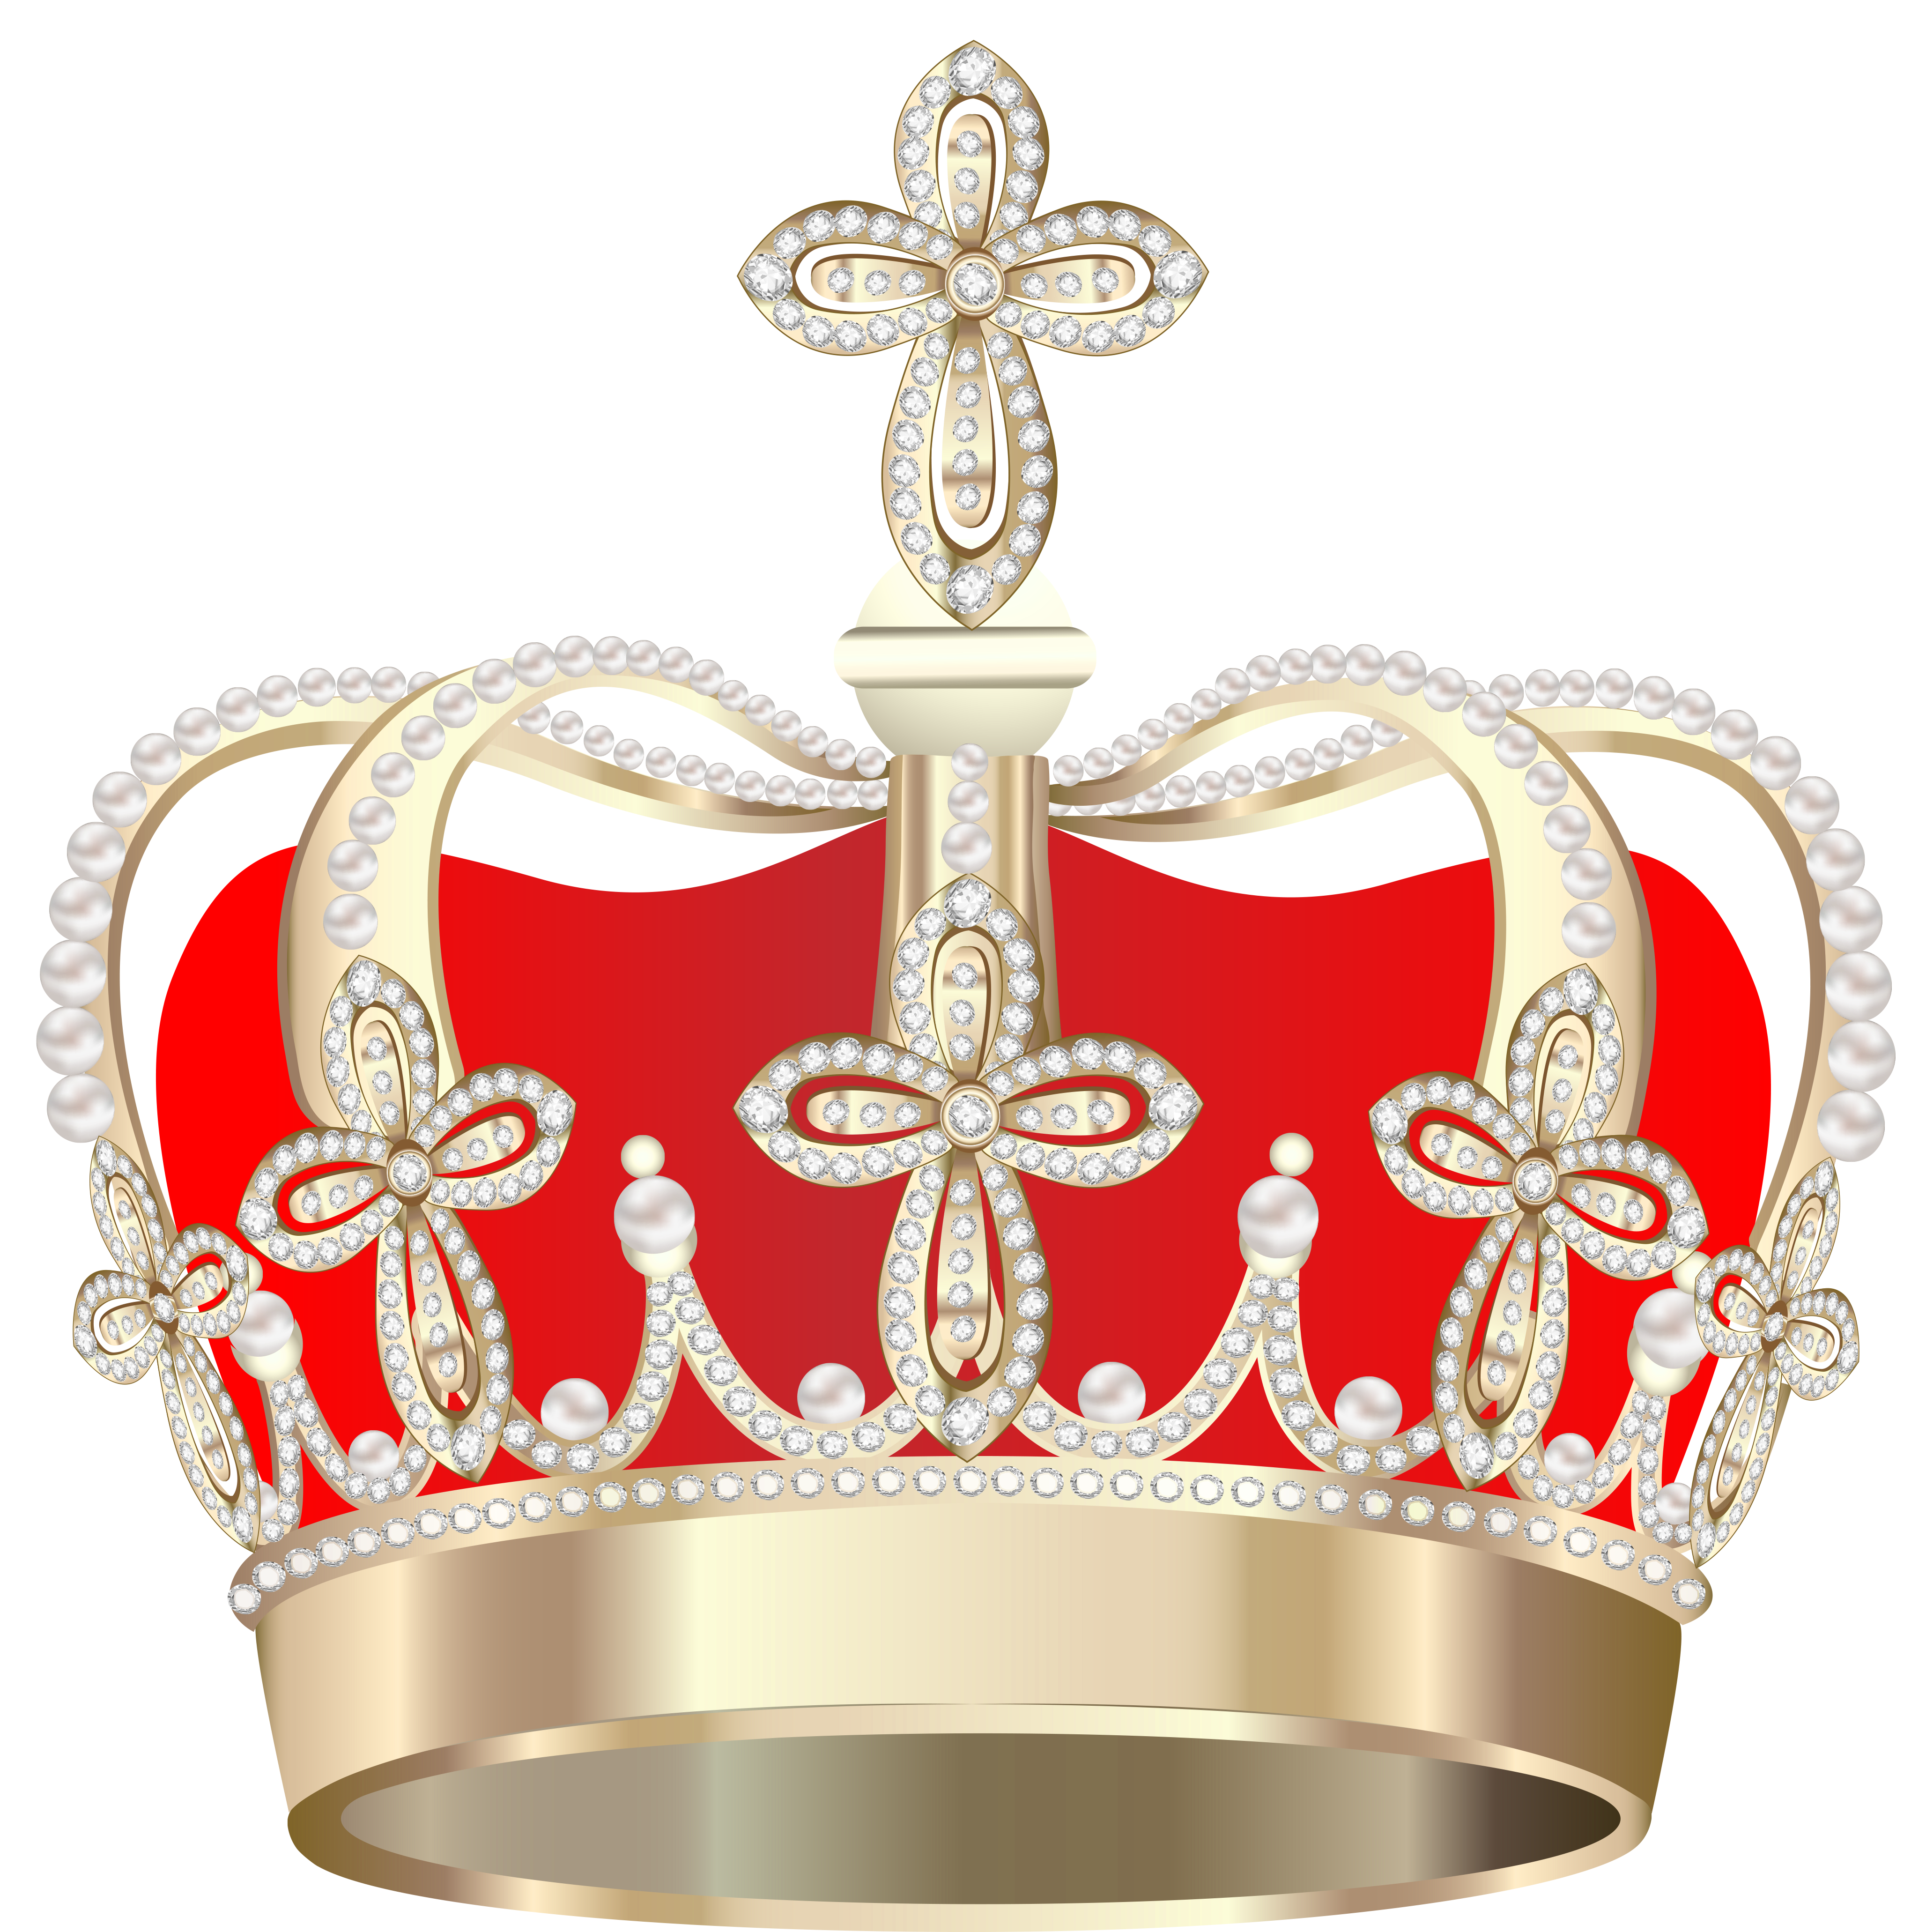 King crown transparent png. Picture gallery yopriceville high